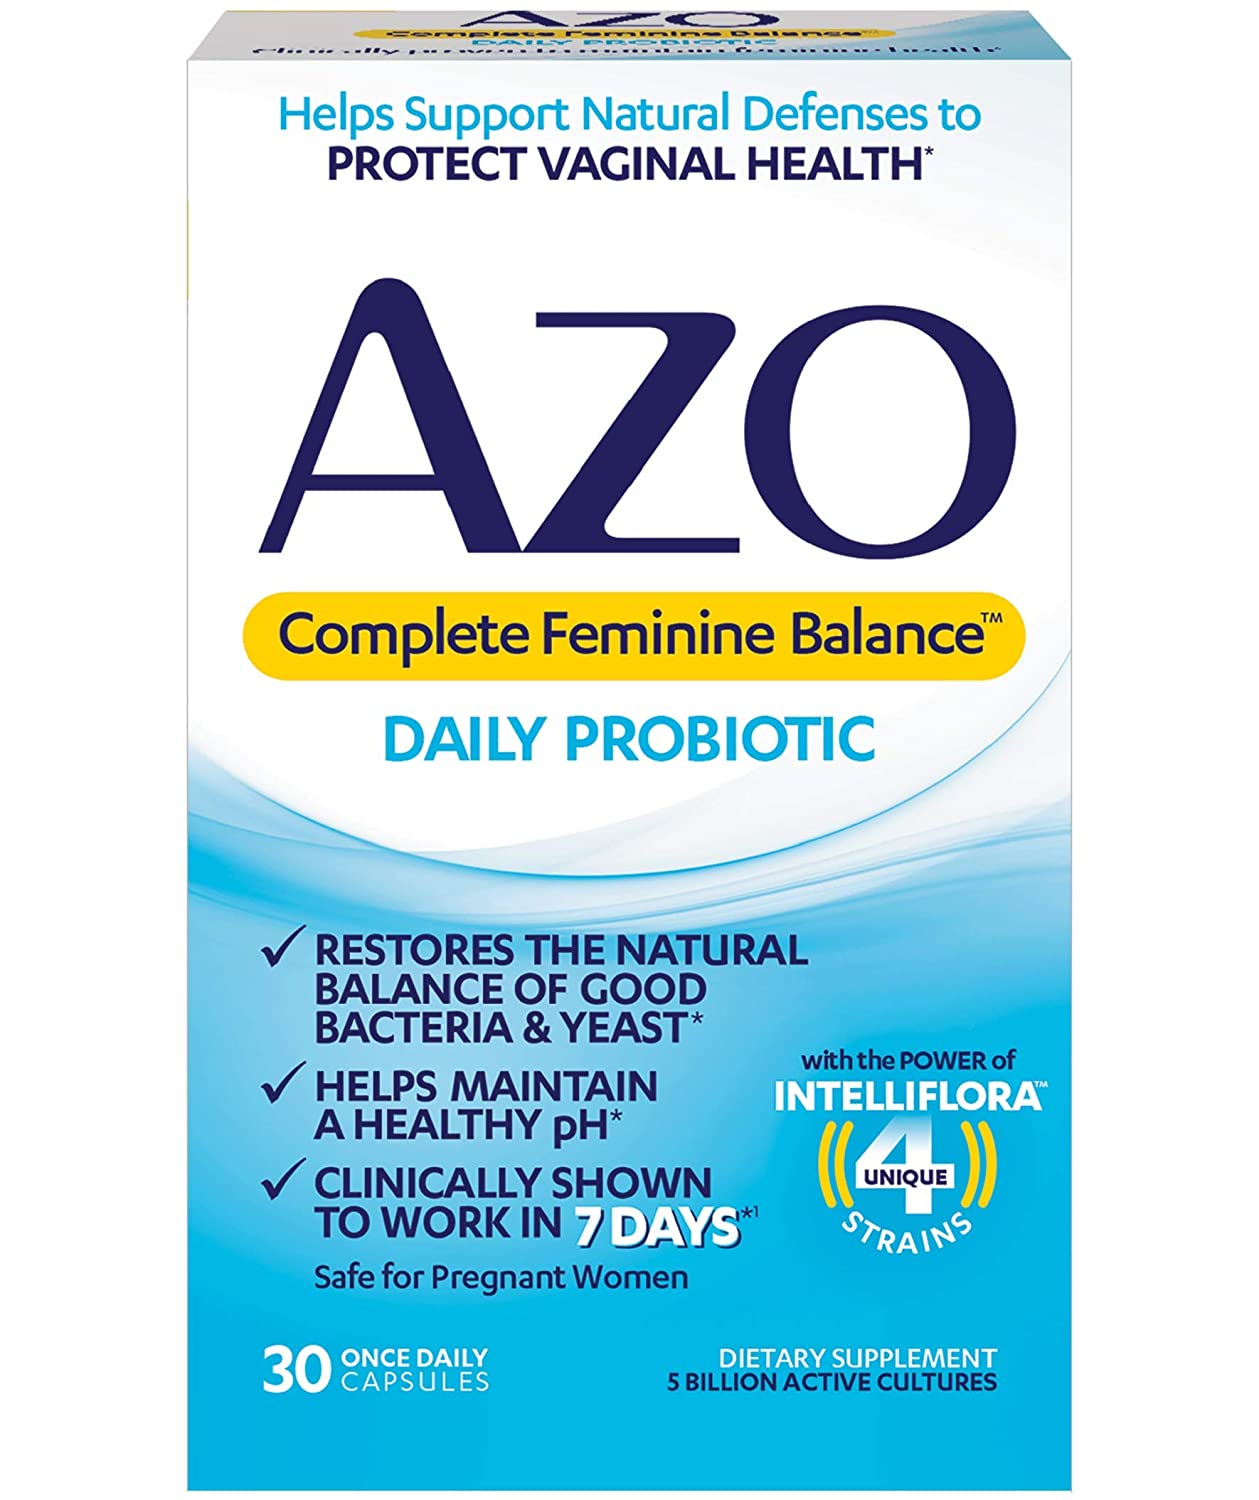 AZO Complete Feminine Balance Daily Probiotics for Women | 30 Count |  Clinically Proven to Help Protect